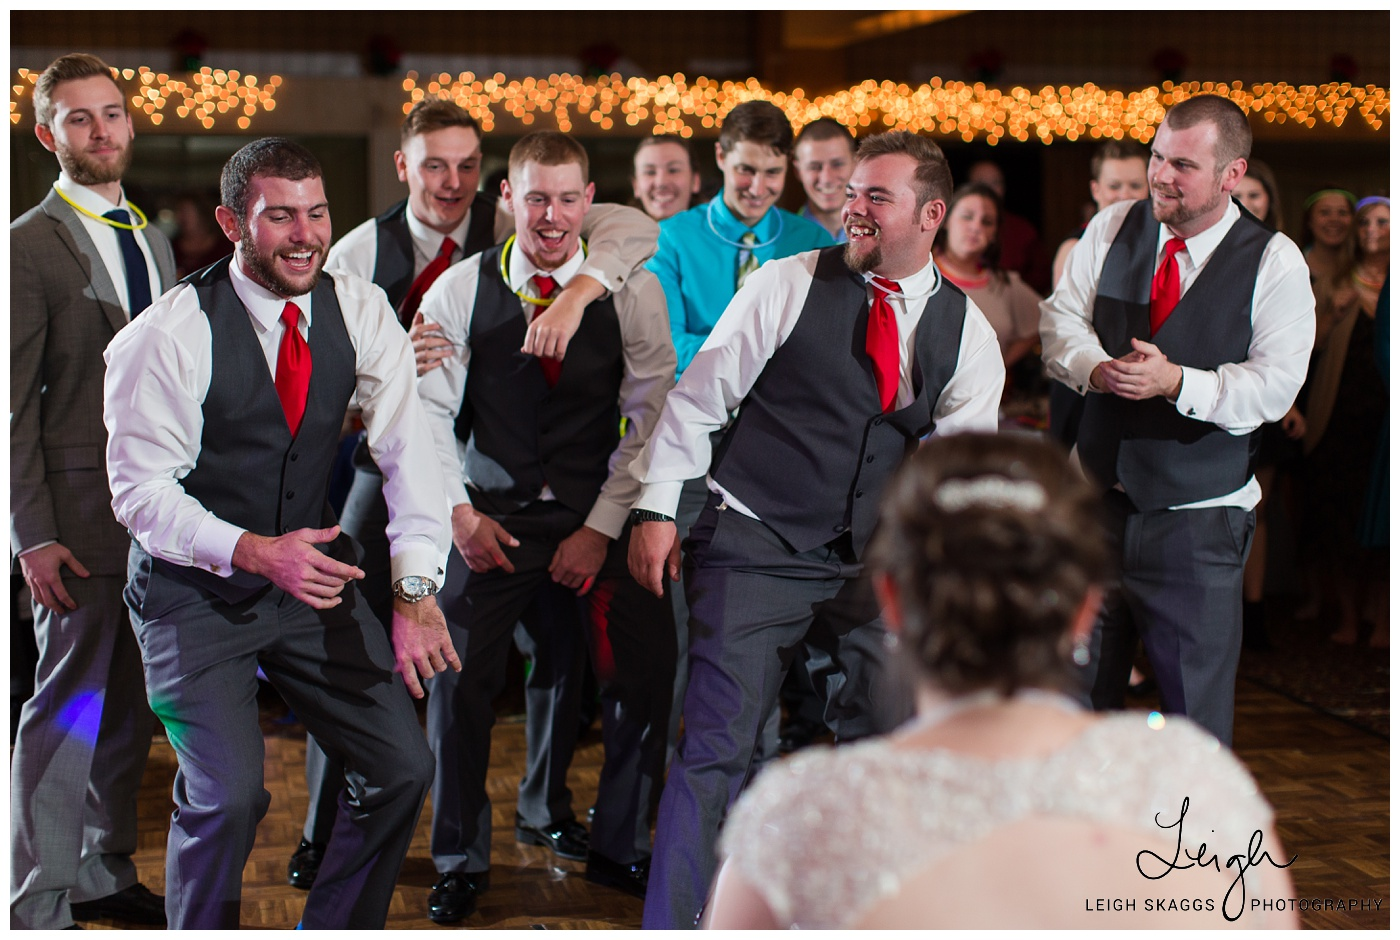 Ashley & Dan | A Shifting Sands Wedding